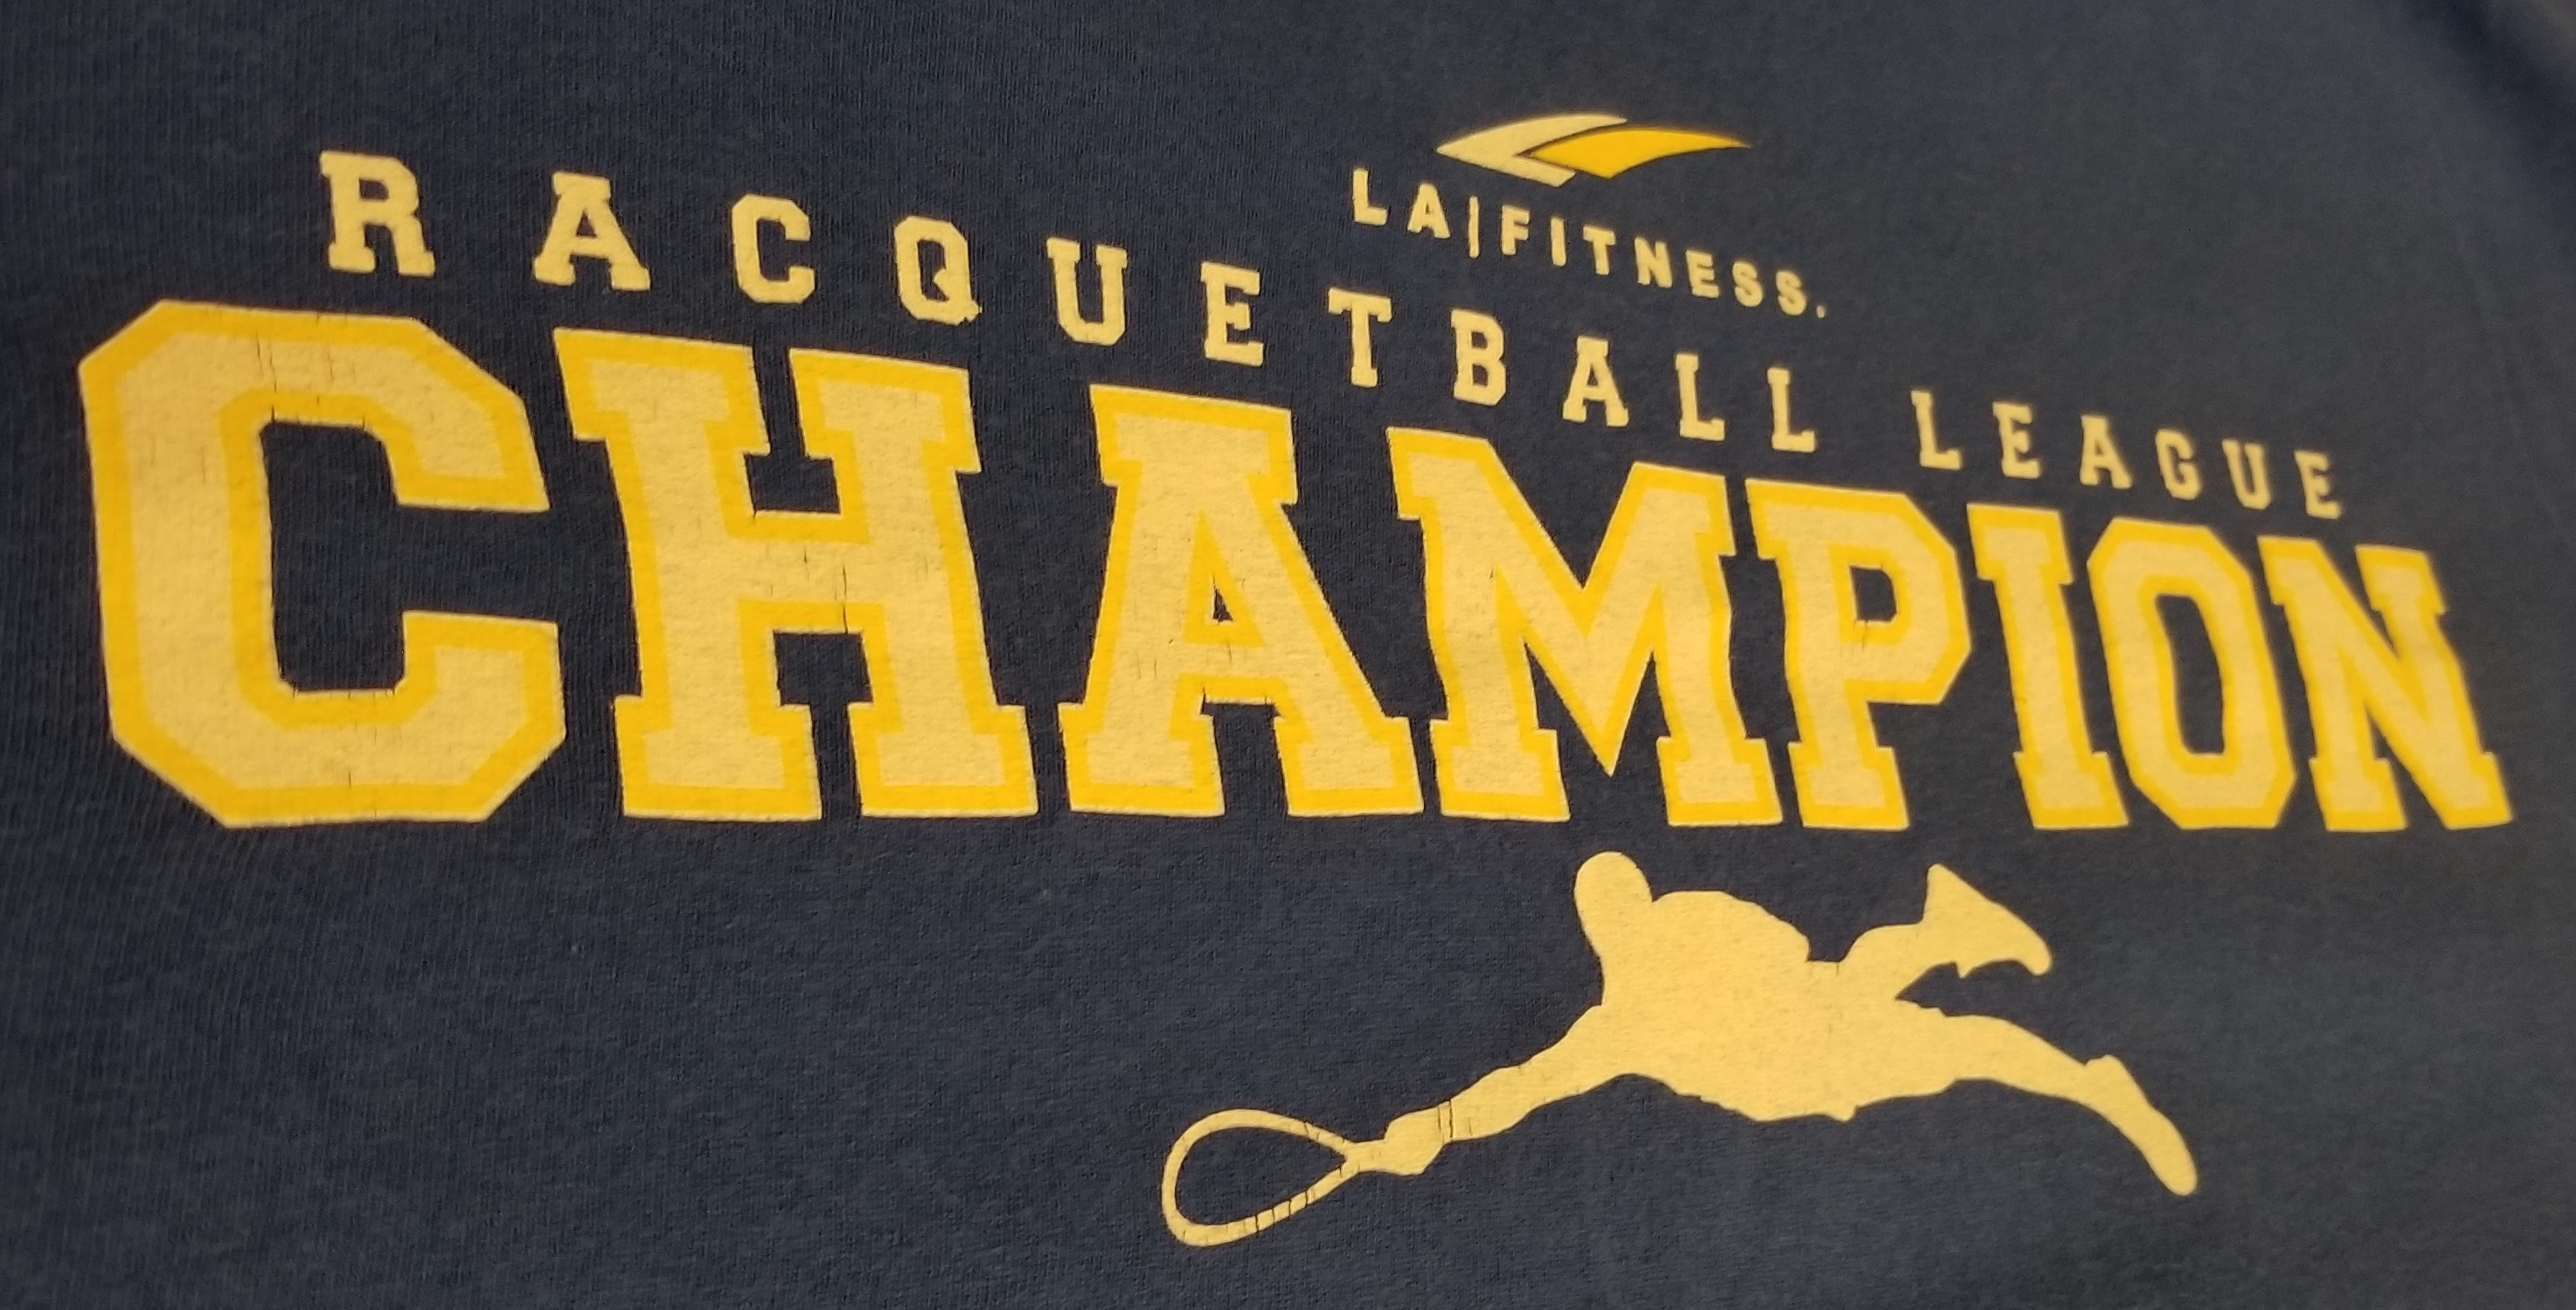 LA Fitness Racquetball League